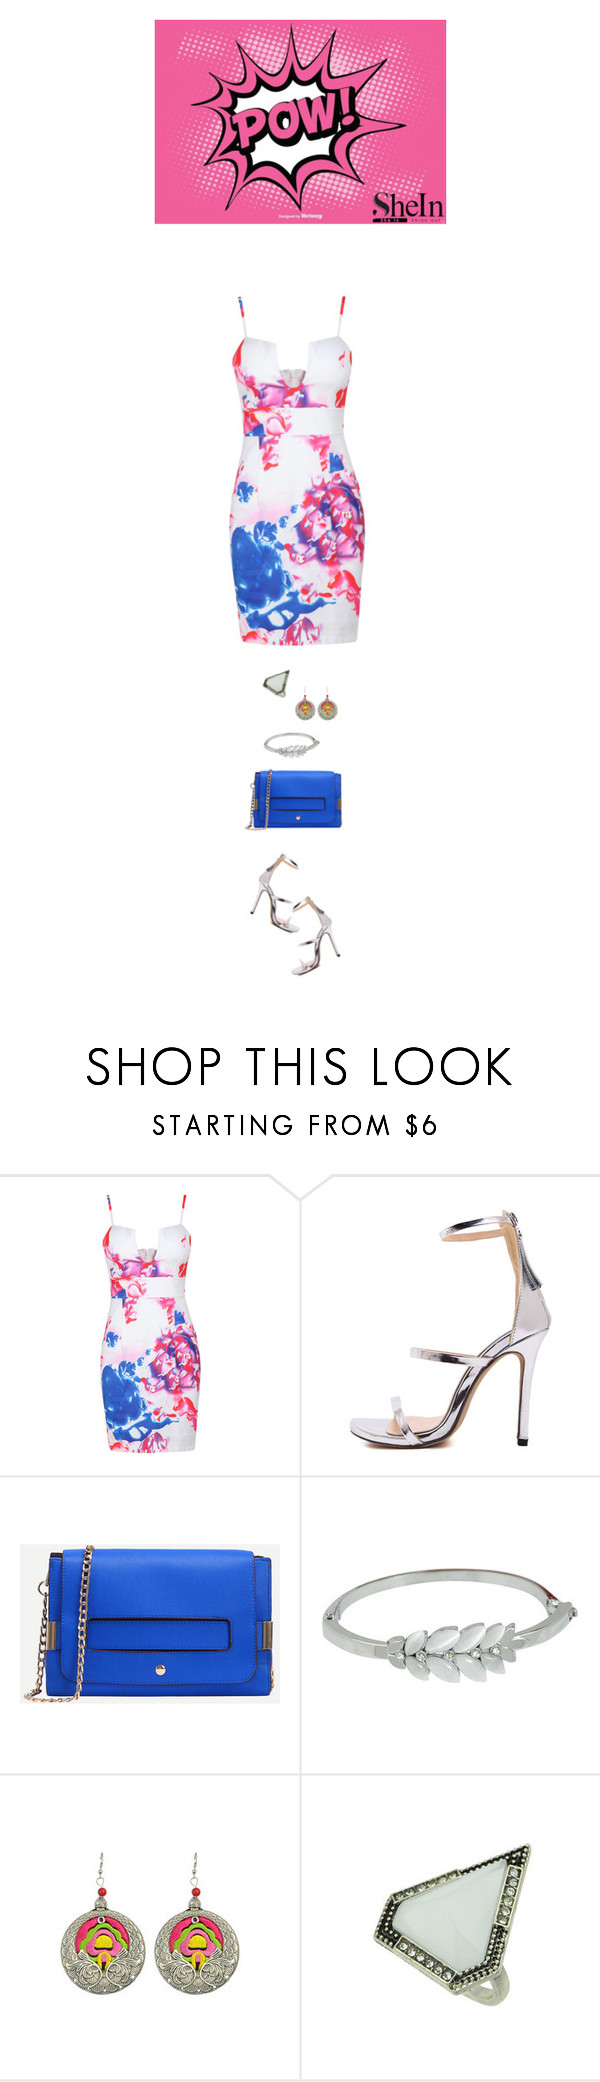 """""""Shein pow"""" by blueeyed-dreamer ❤ liked on Polyvore featuring contest, Heels, dress and shein"""